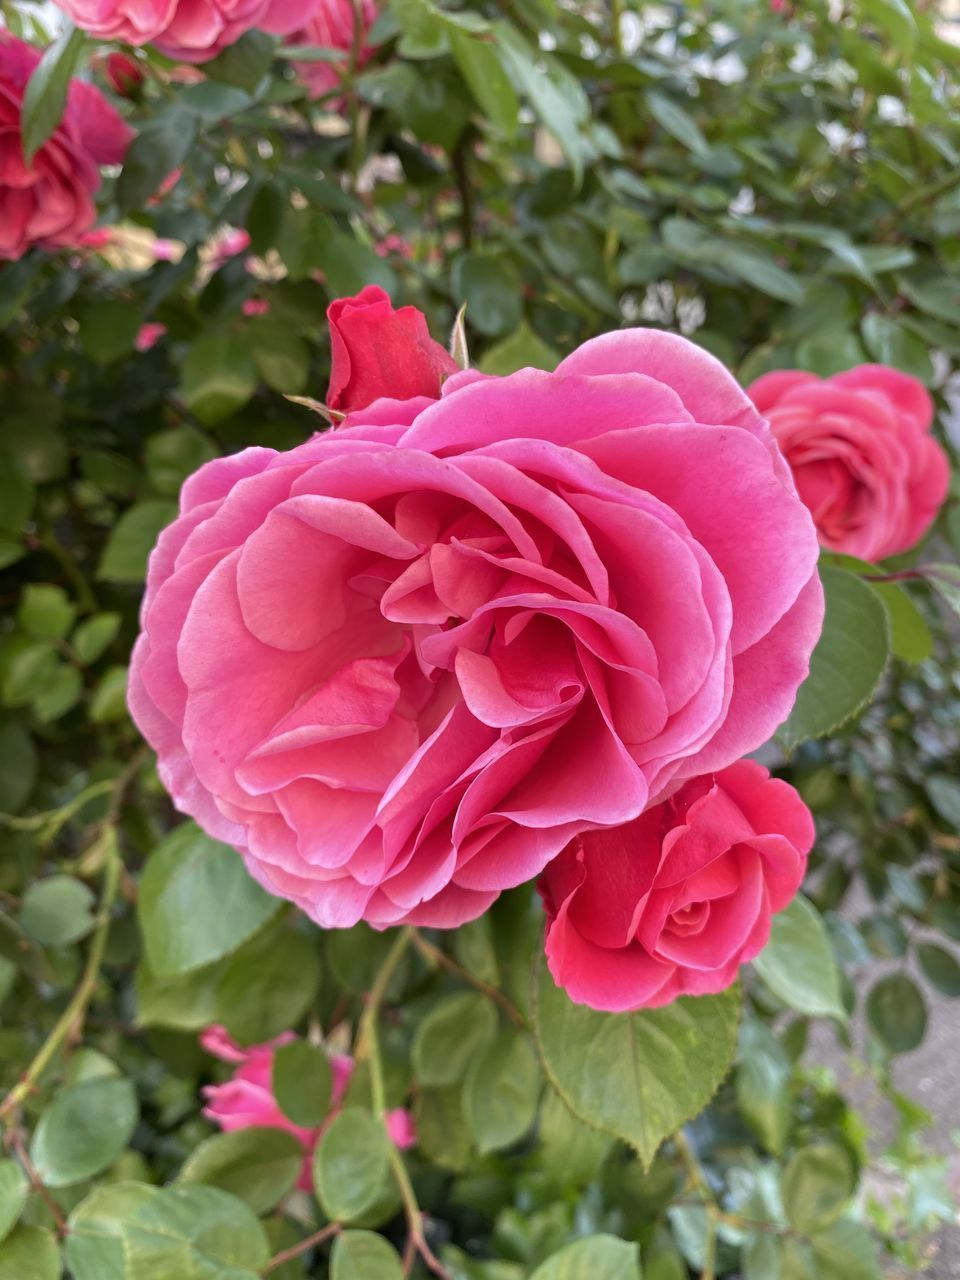 CLOSE-UP OF PINK ROSE IN BLOOM